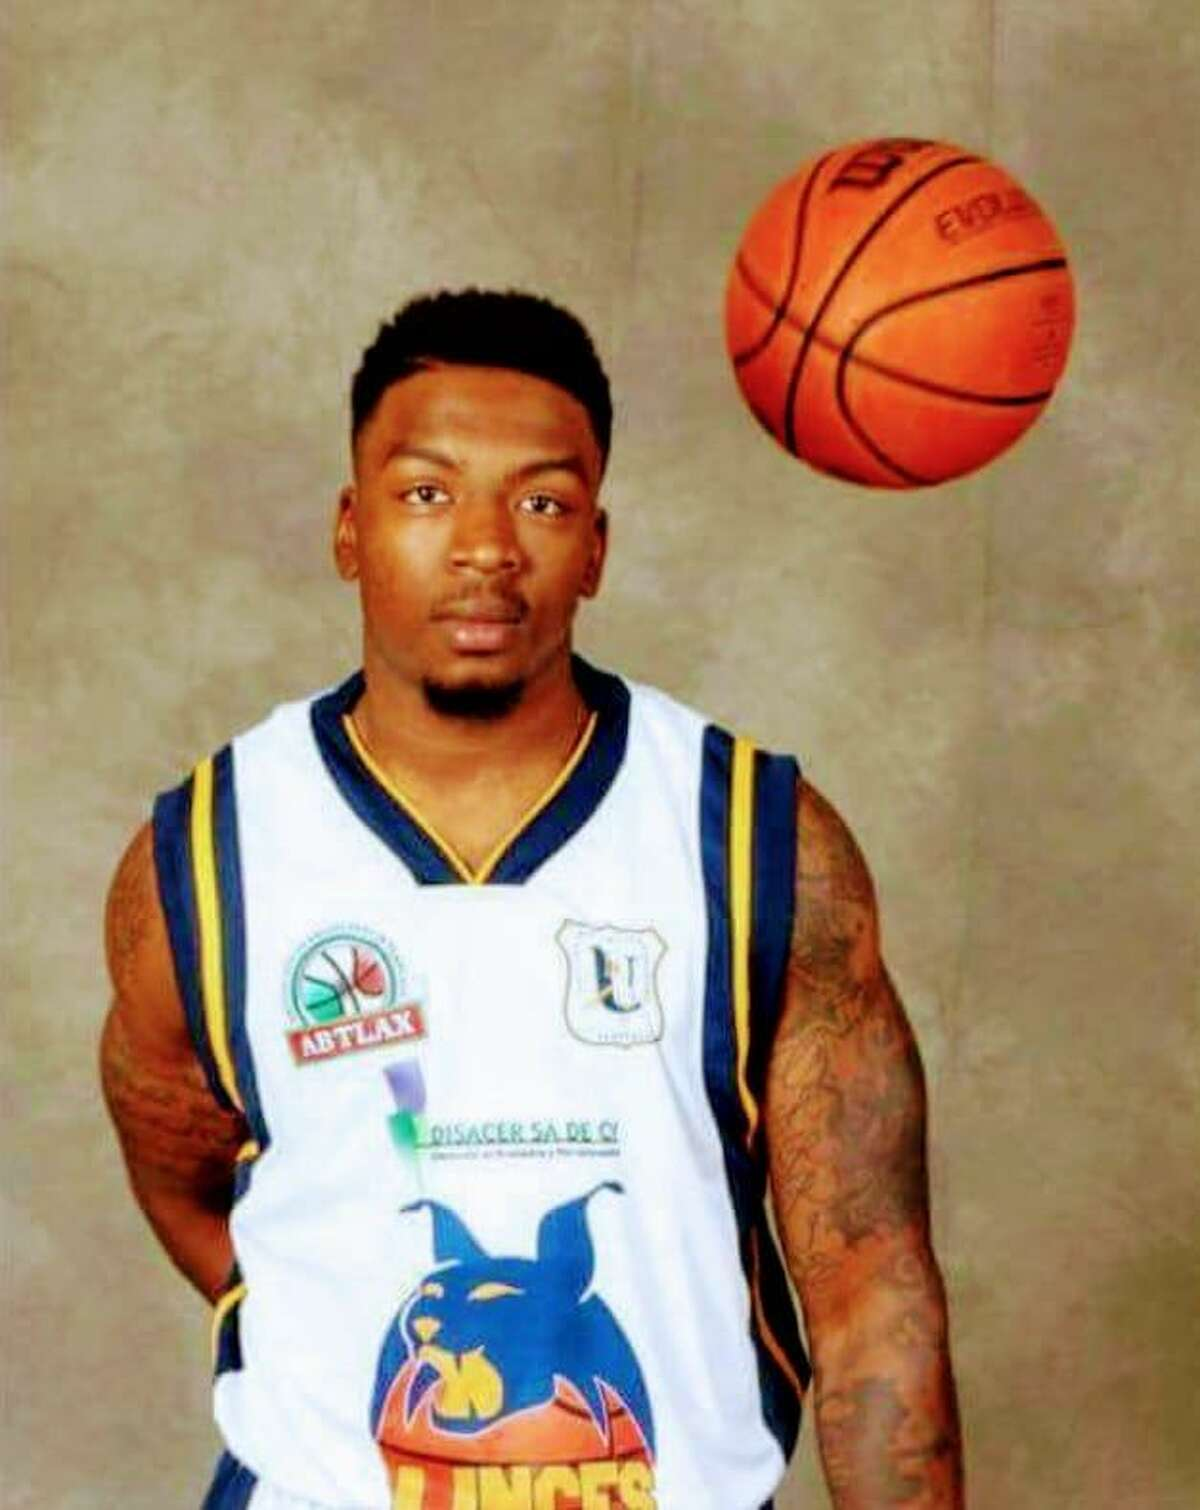 Tyrice D'Andre Hill Sr. played professional basketball in Mexico before returning to the United States and becoming a DJ.